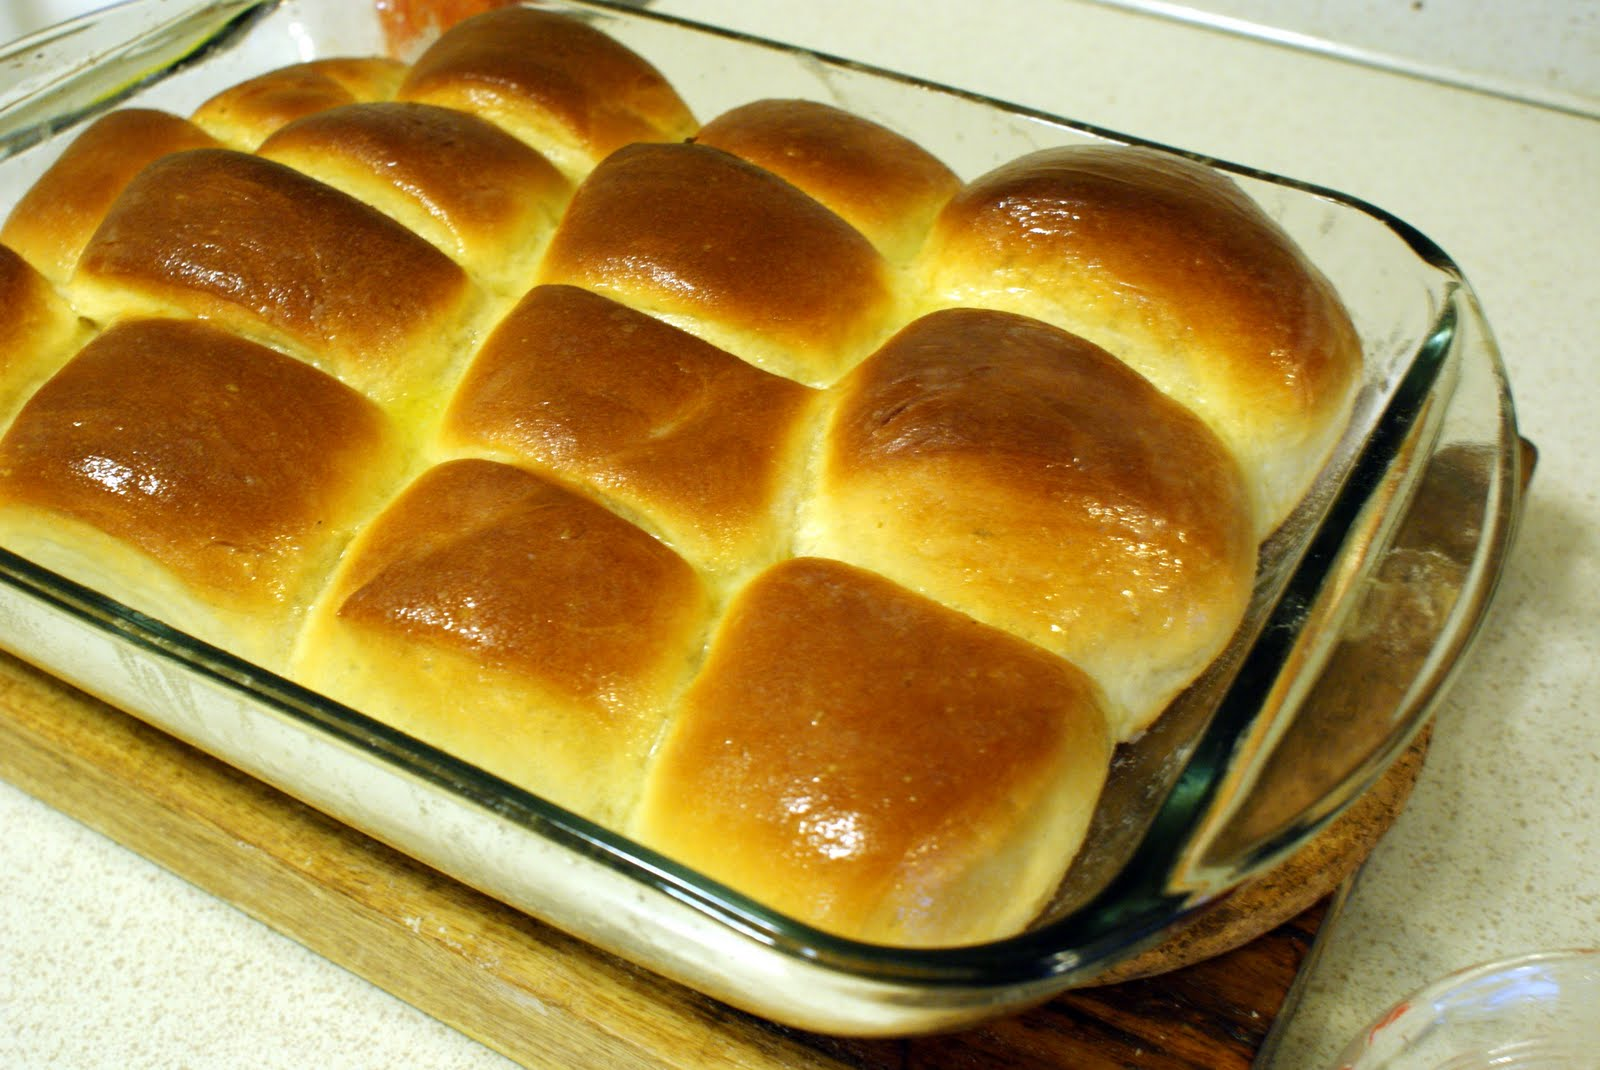 Parker House rolls were invented in the 19th century at a famous ...